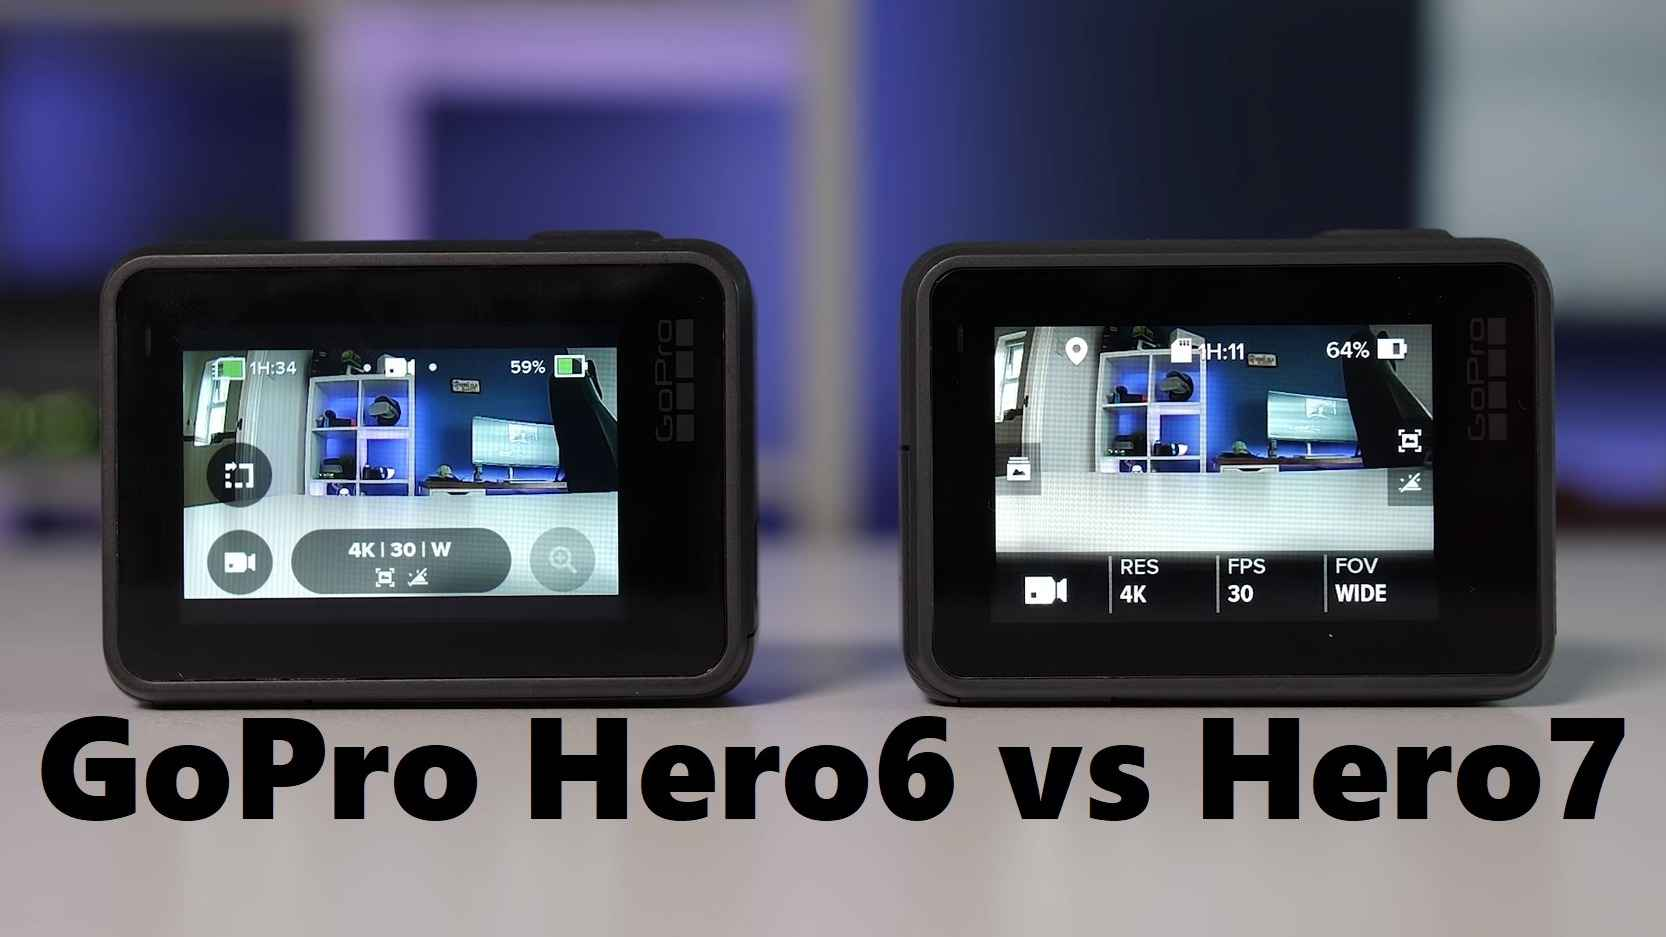 GoPro Hero6 vs Hero7